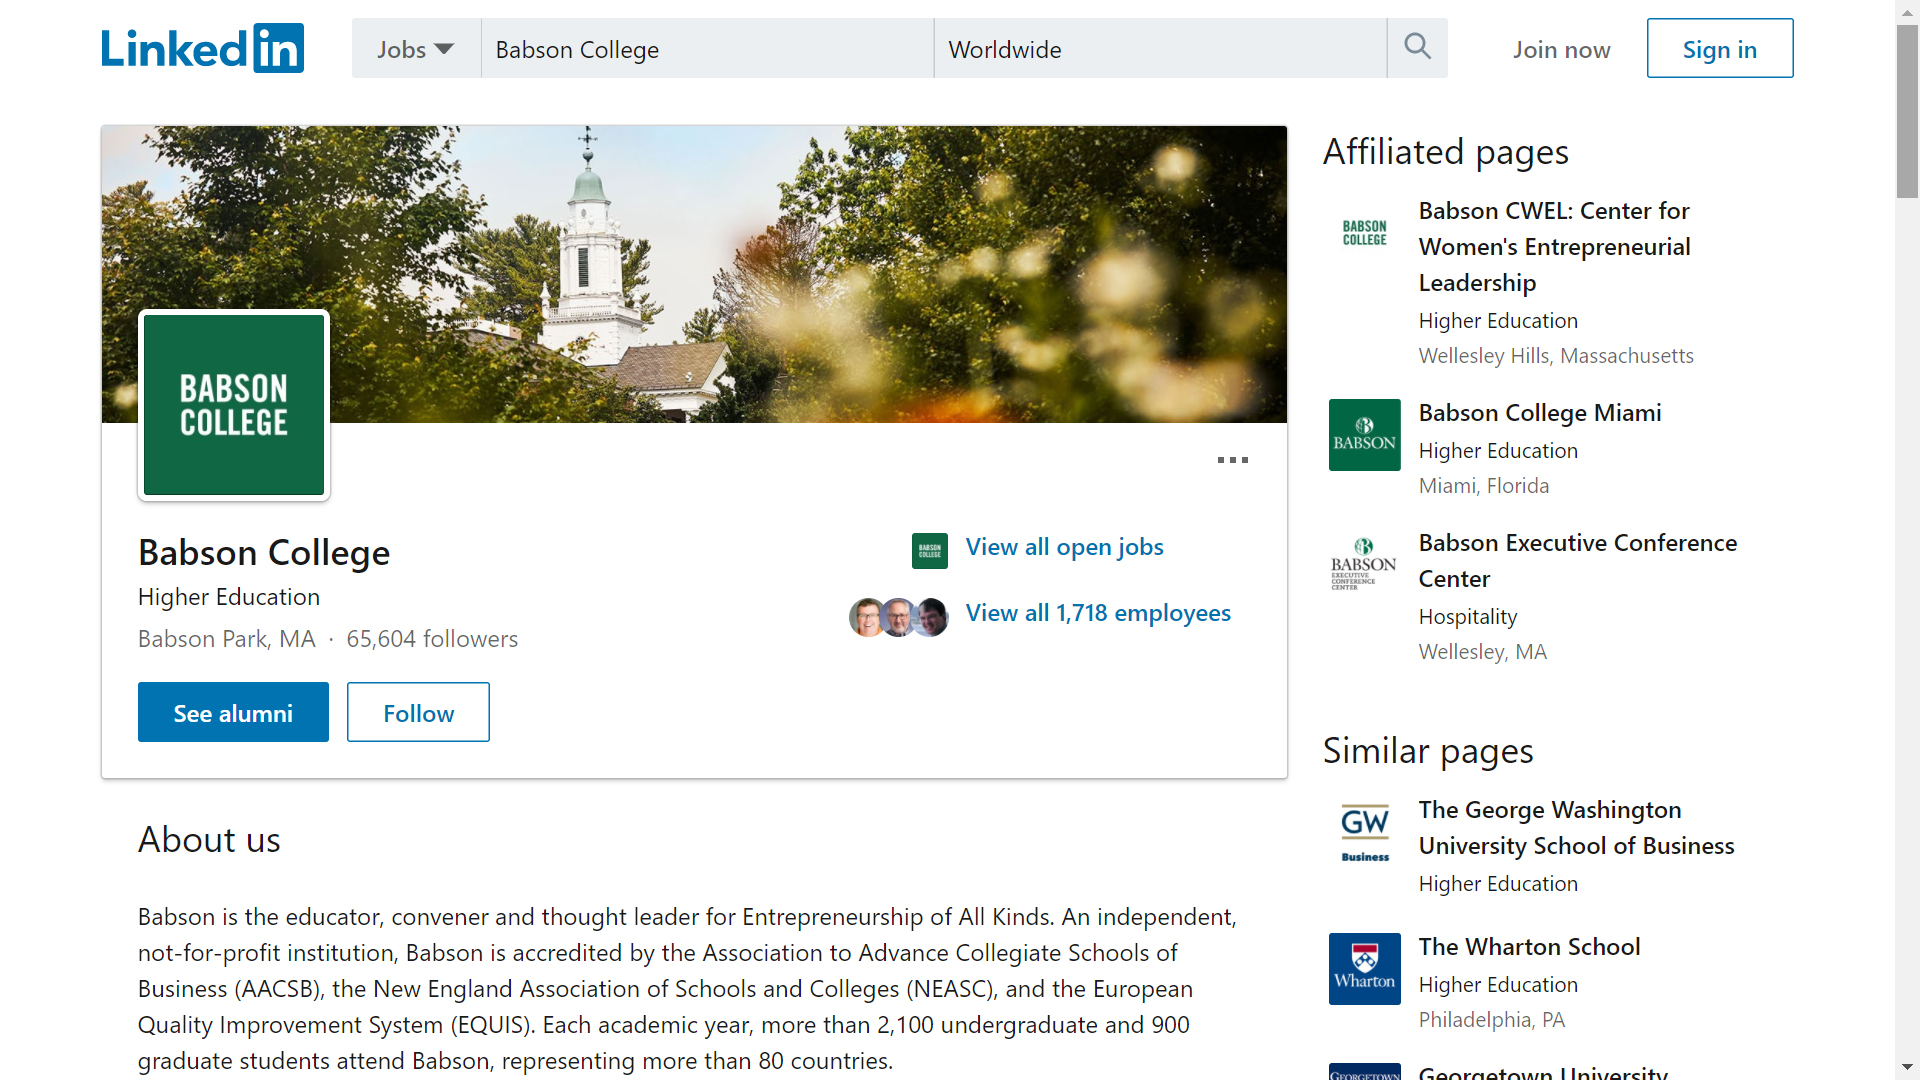 Babson College on LinkedIn